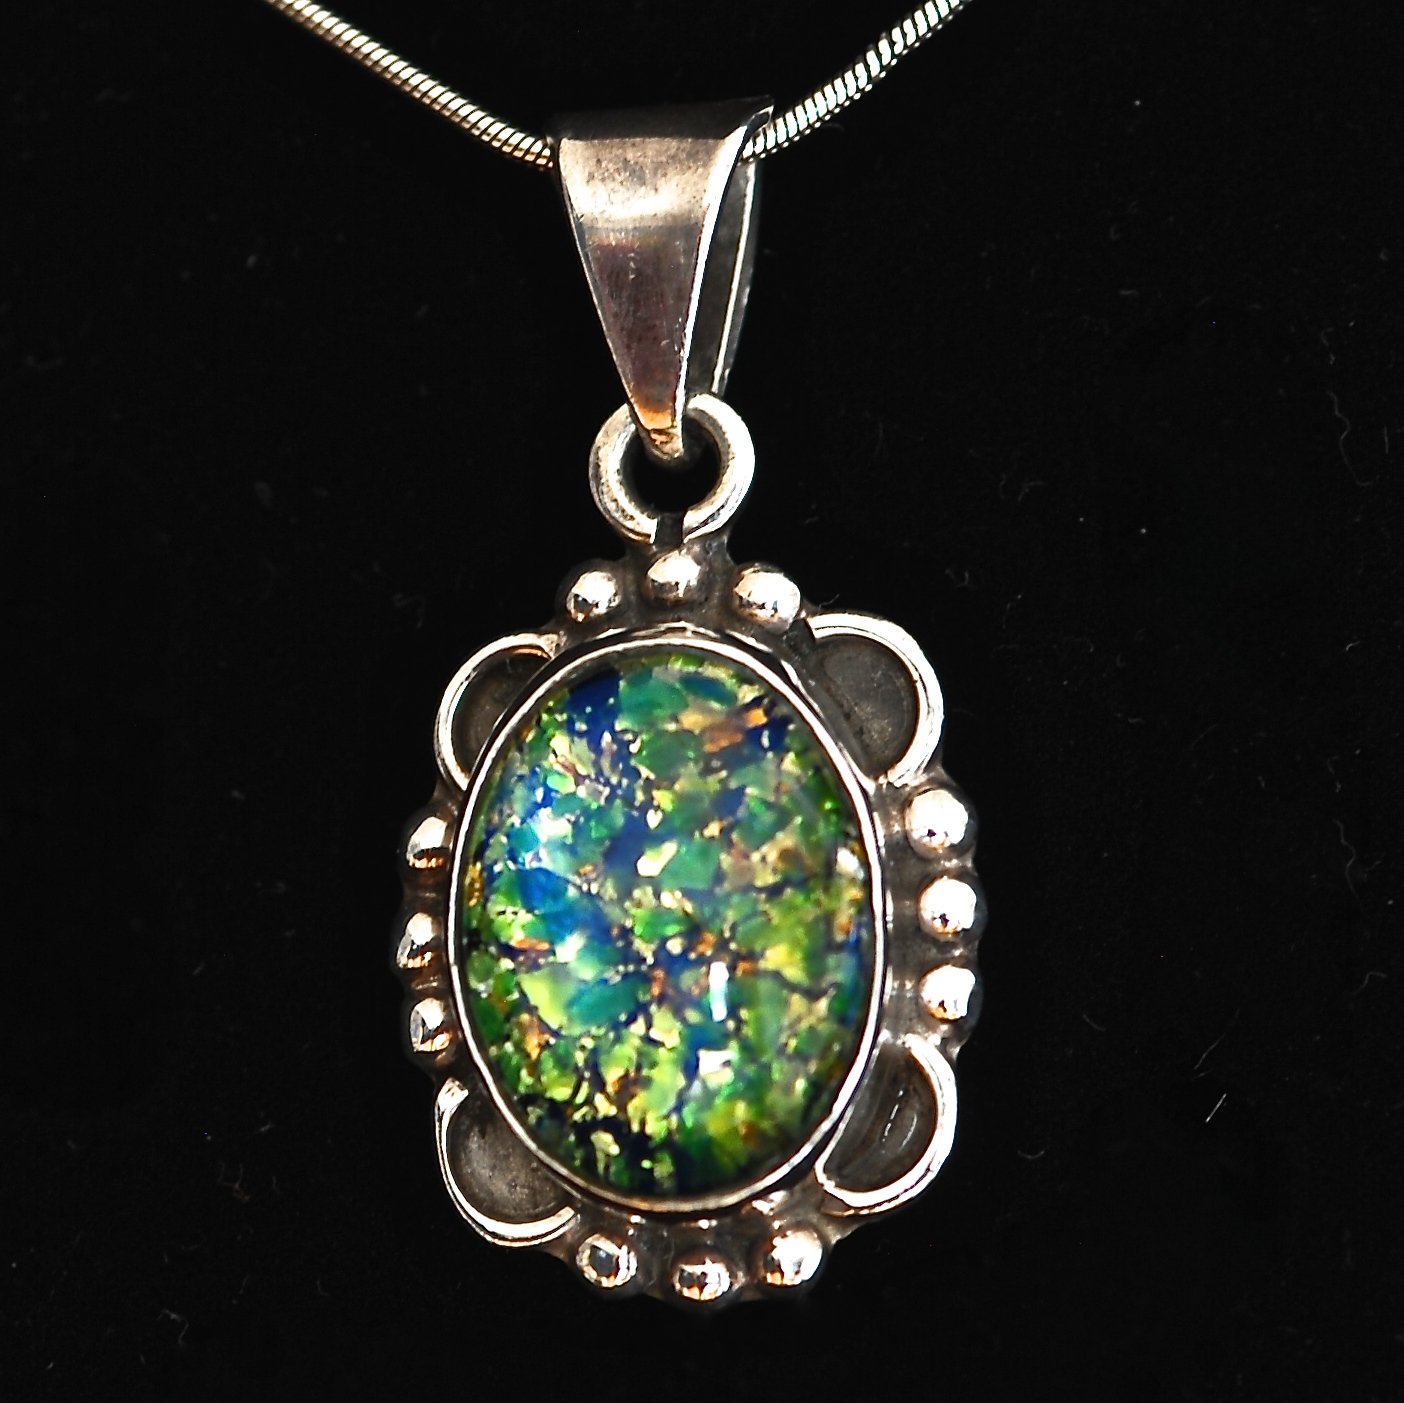 b23844bf9 Taxco Sterling Silver Pendant Necklace Featuring Ammolite Gemstone – Mexico